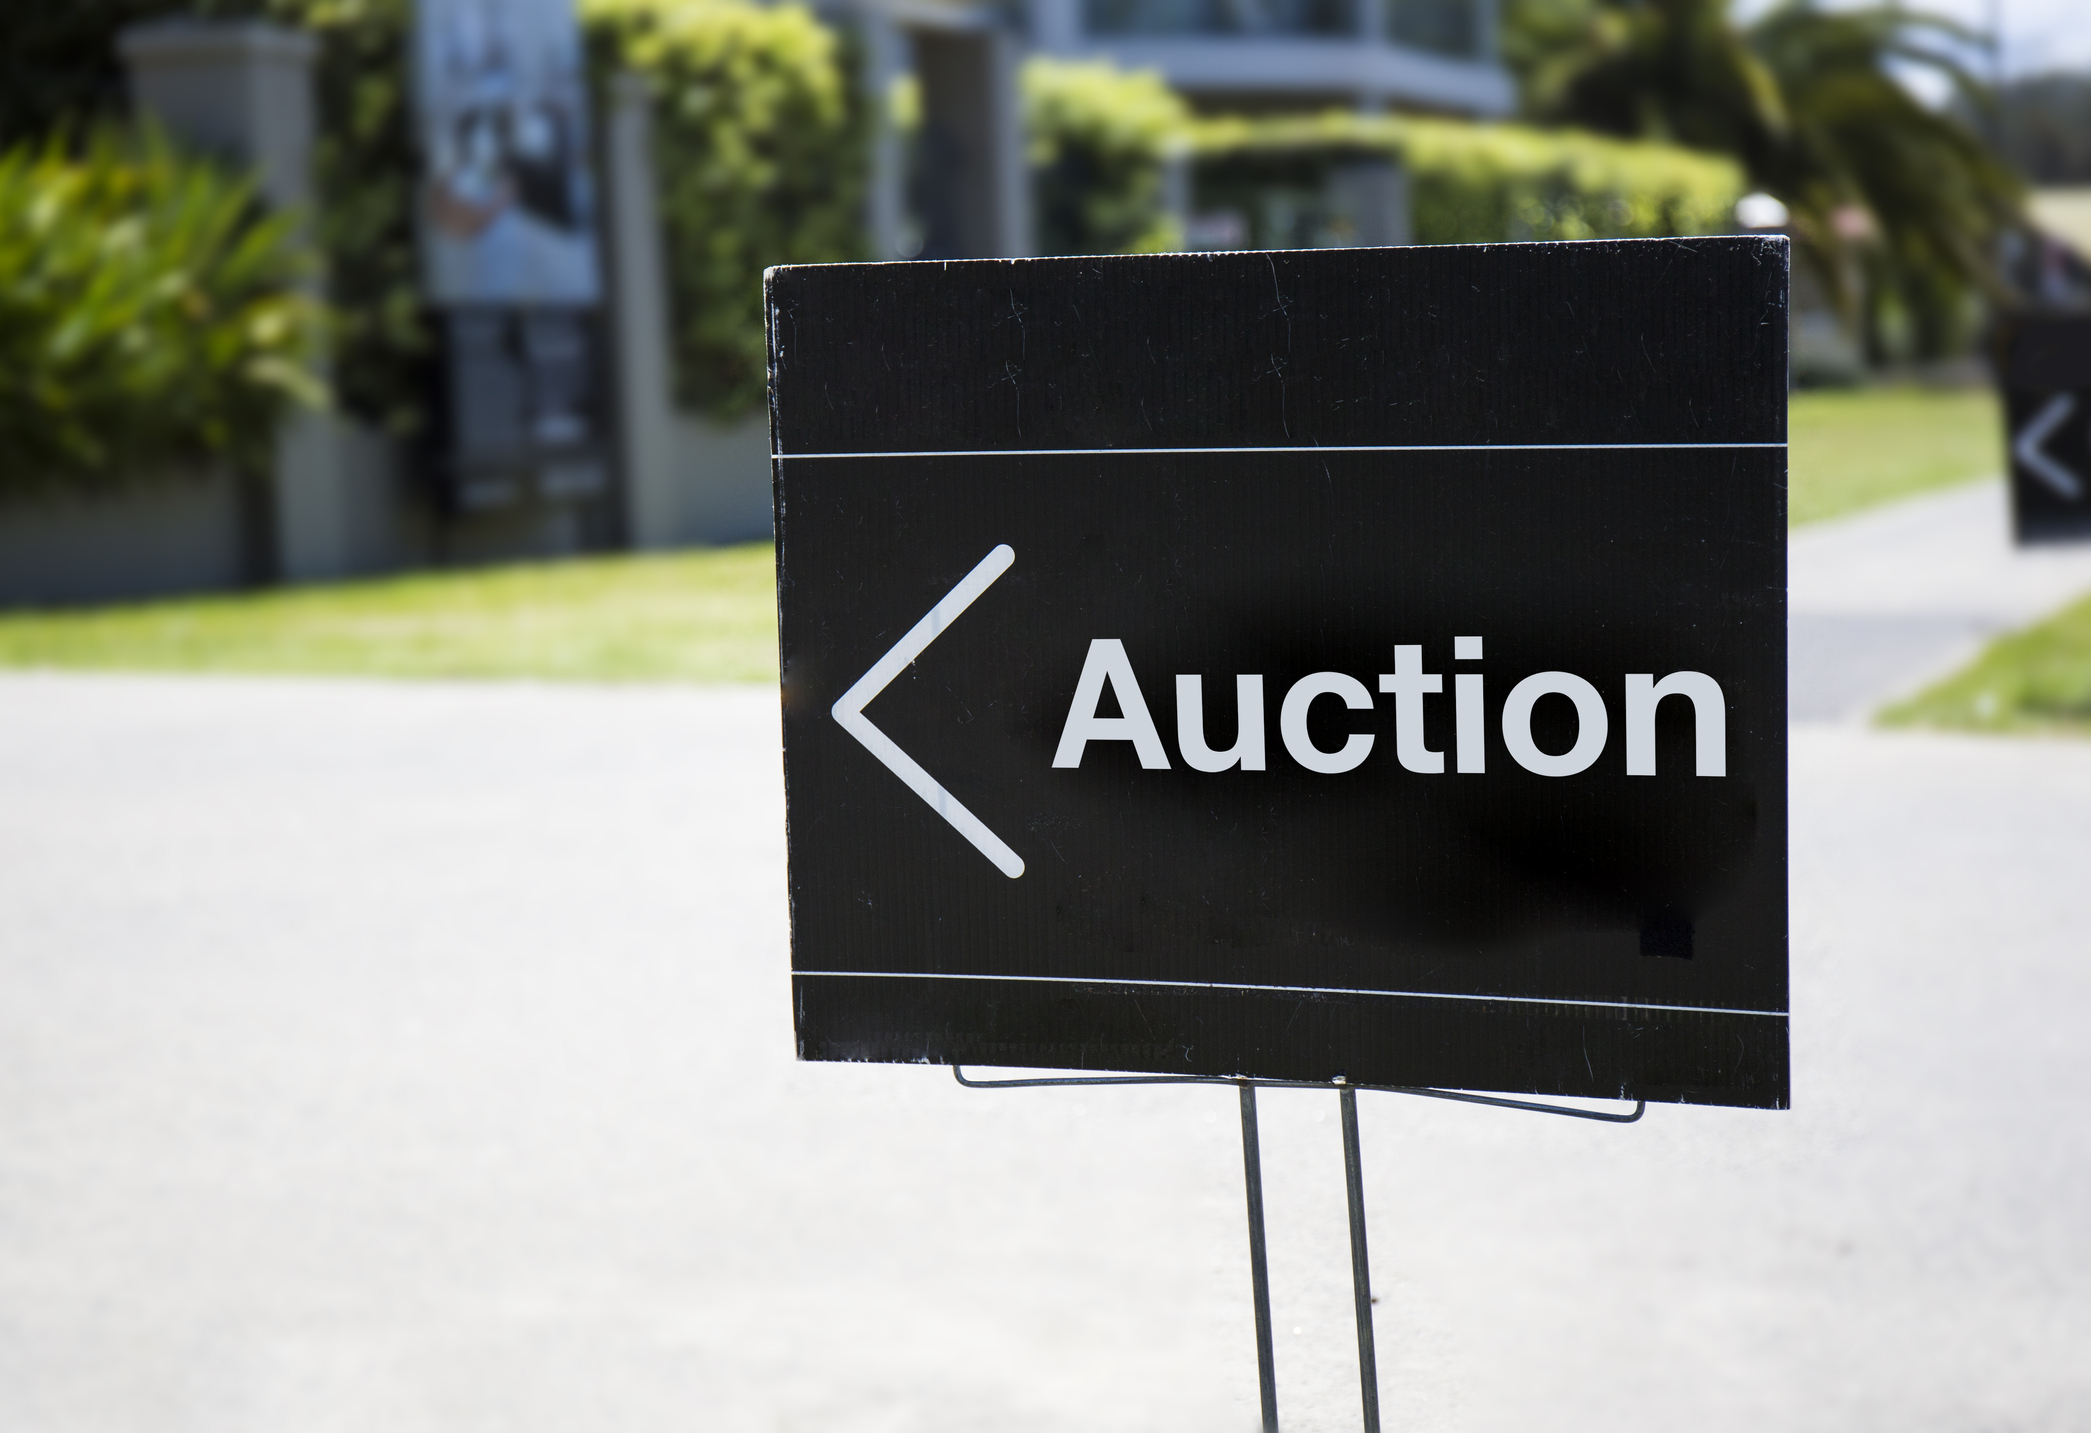 Where Is the Next One - Find out about our Upcoming Auctions